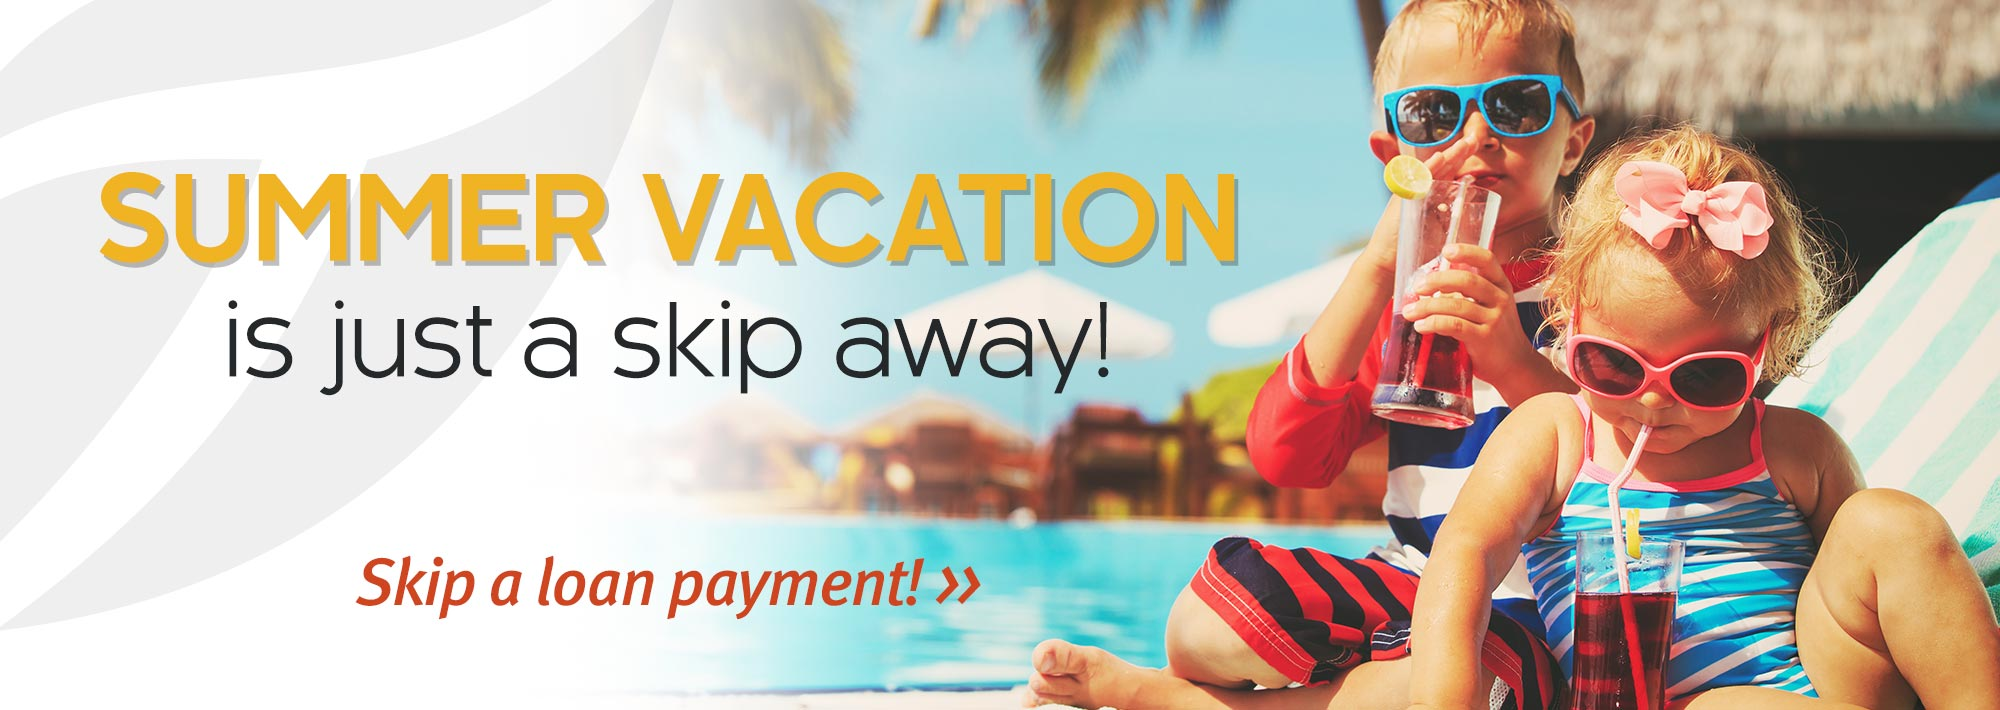 Summer Vacation is just a skip away! Skip a loan payment »